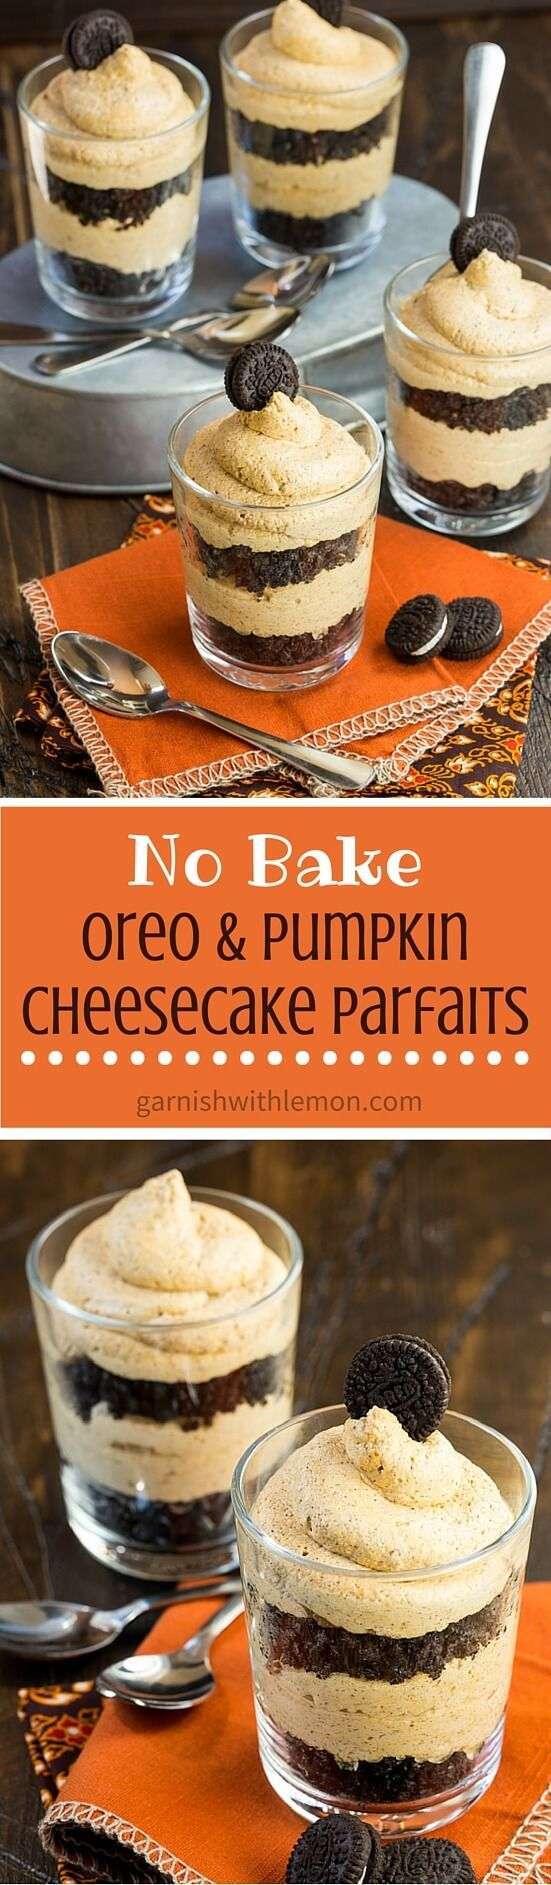 Fall desserts don't get much easier than these No Bake Oreo and Pumpkin Cheesecake Parfaits! ~ http://www.garnishwithlemon.com